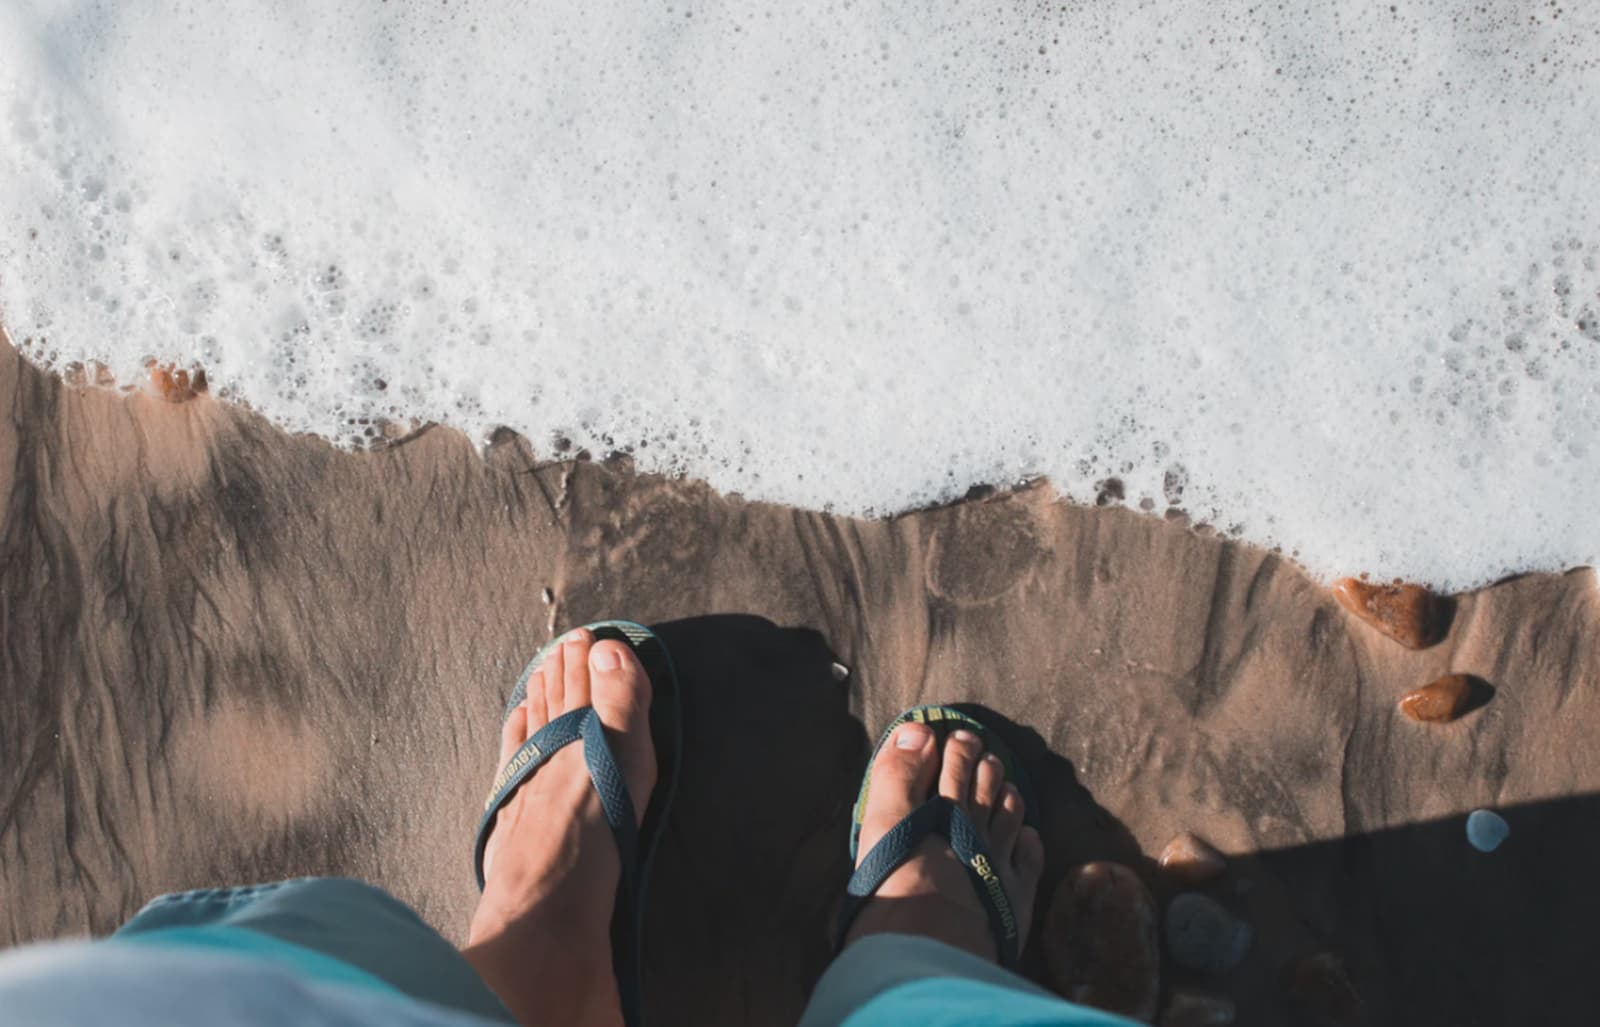 Point of view picture; looking down at a pair of feet in flipflops on a beach as the white foamy surf rolls in